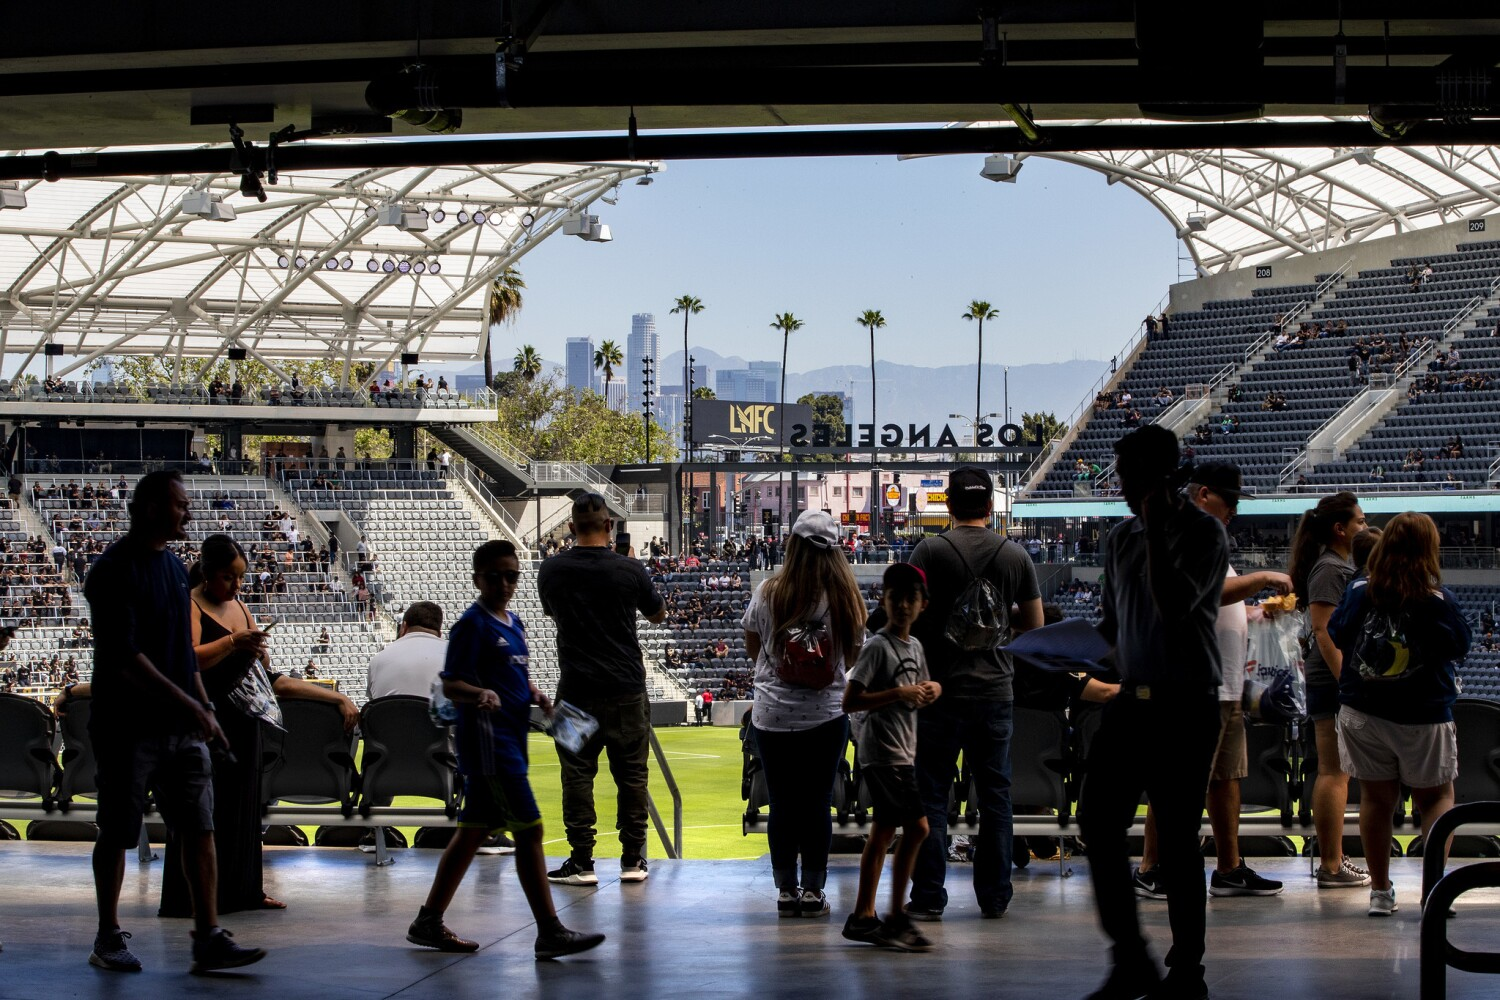 NWSL's Angel City will play home games at Banc of California Stadium